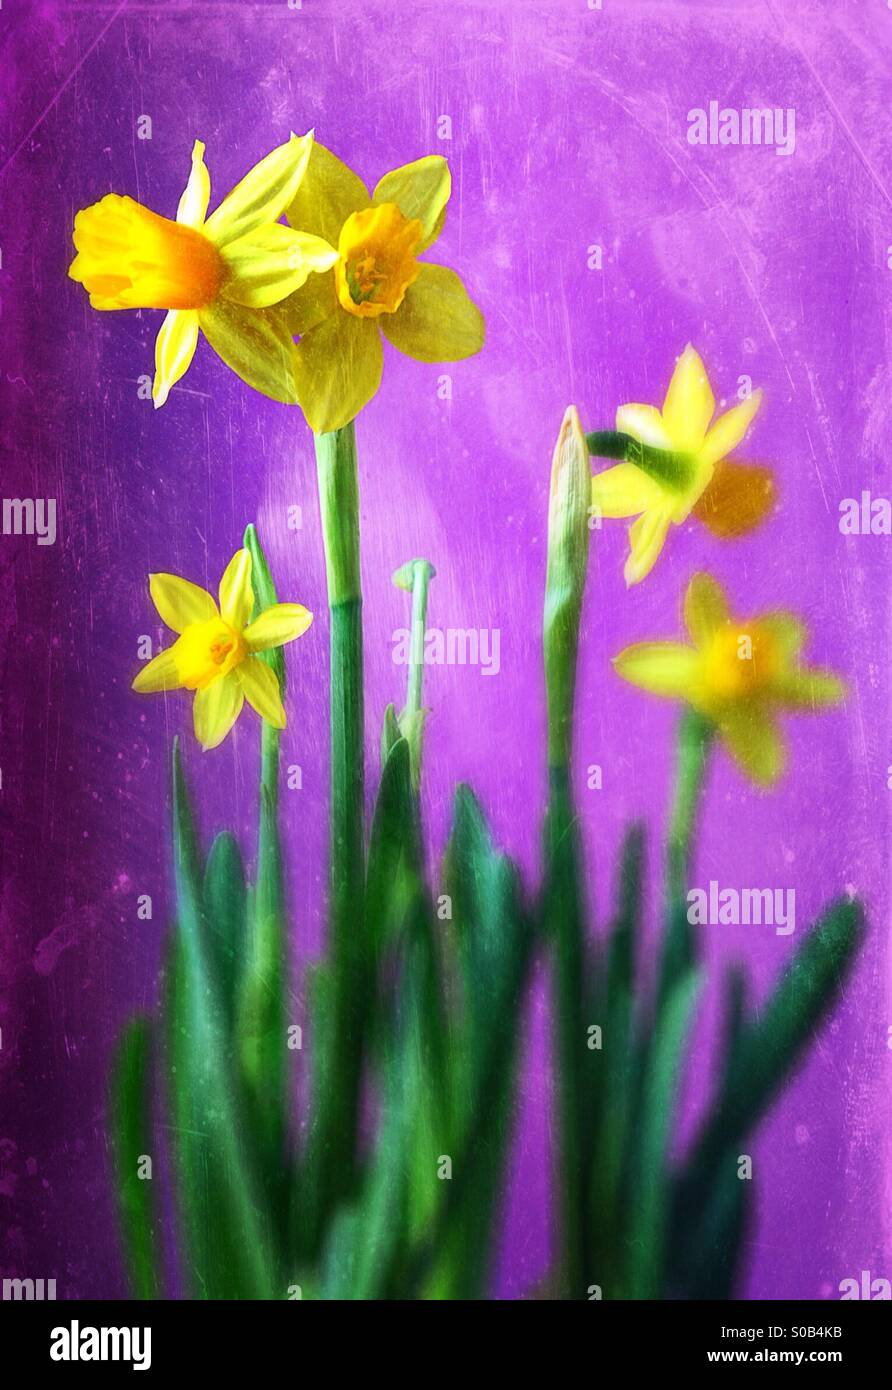 Daffodils against a purple background. - Stock Image